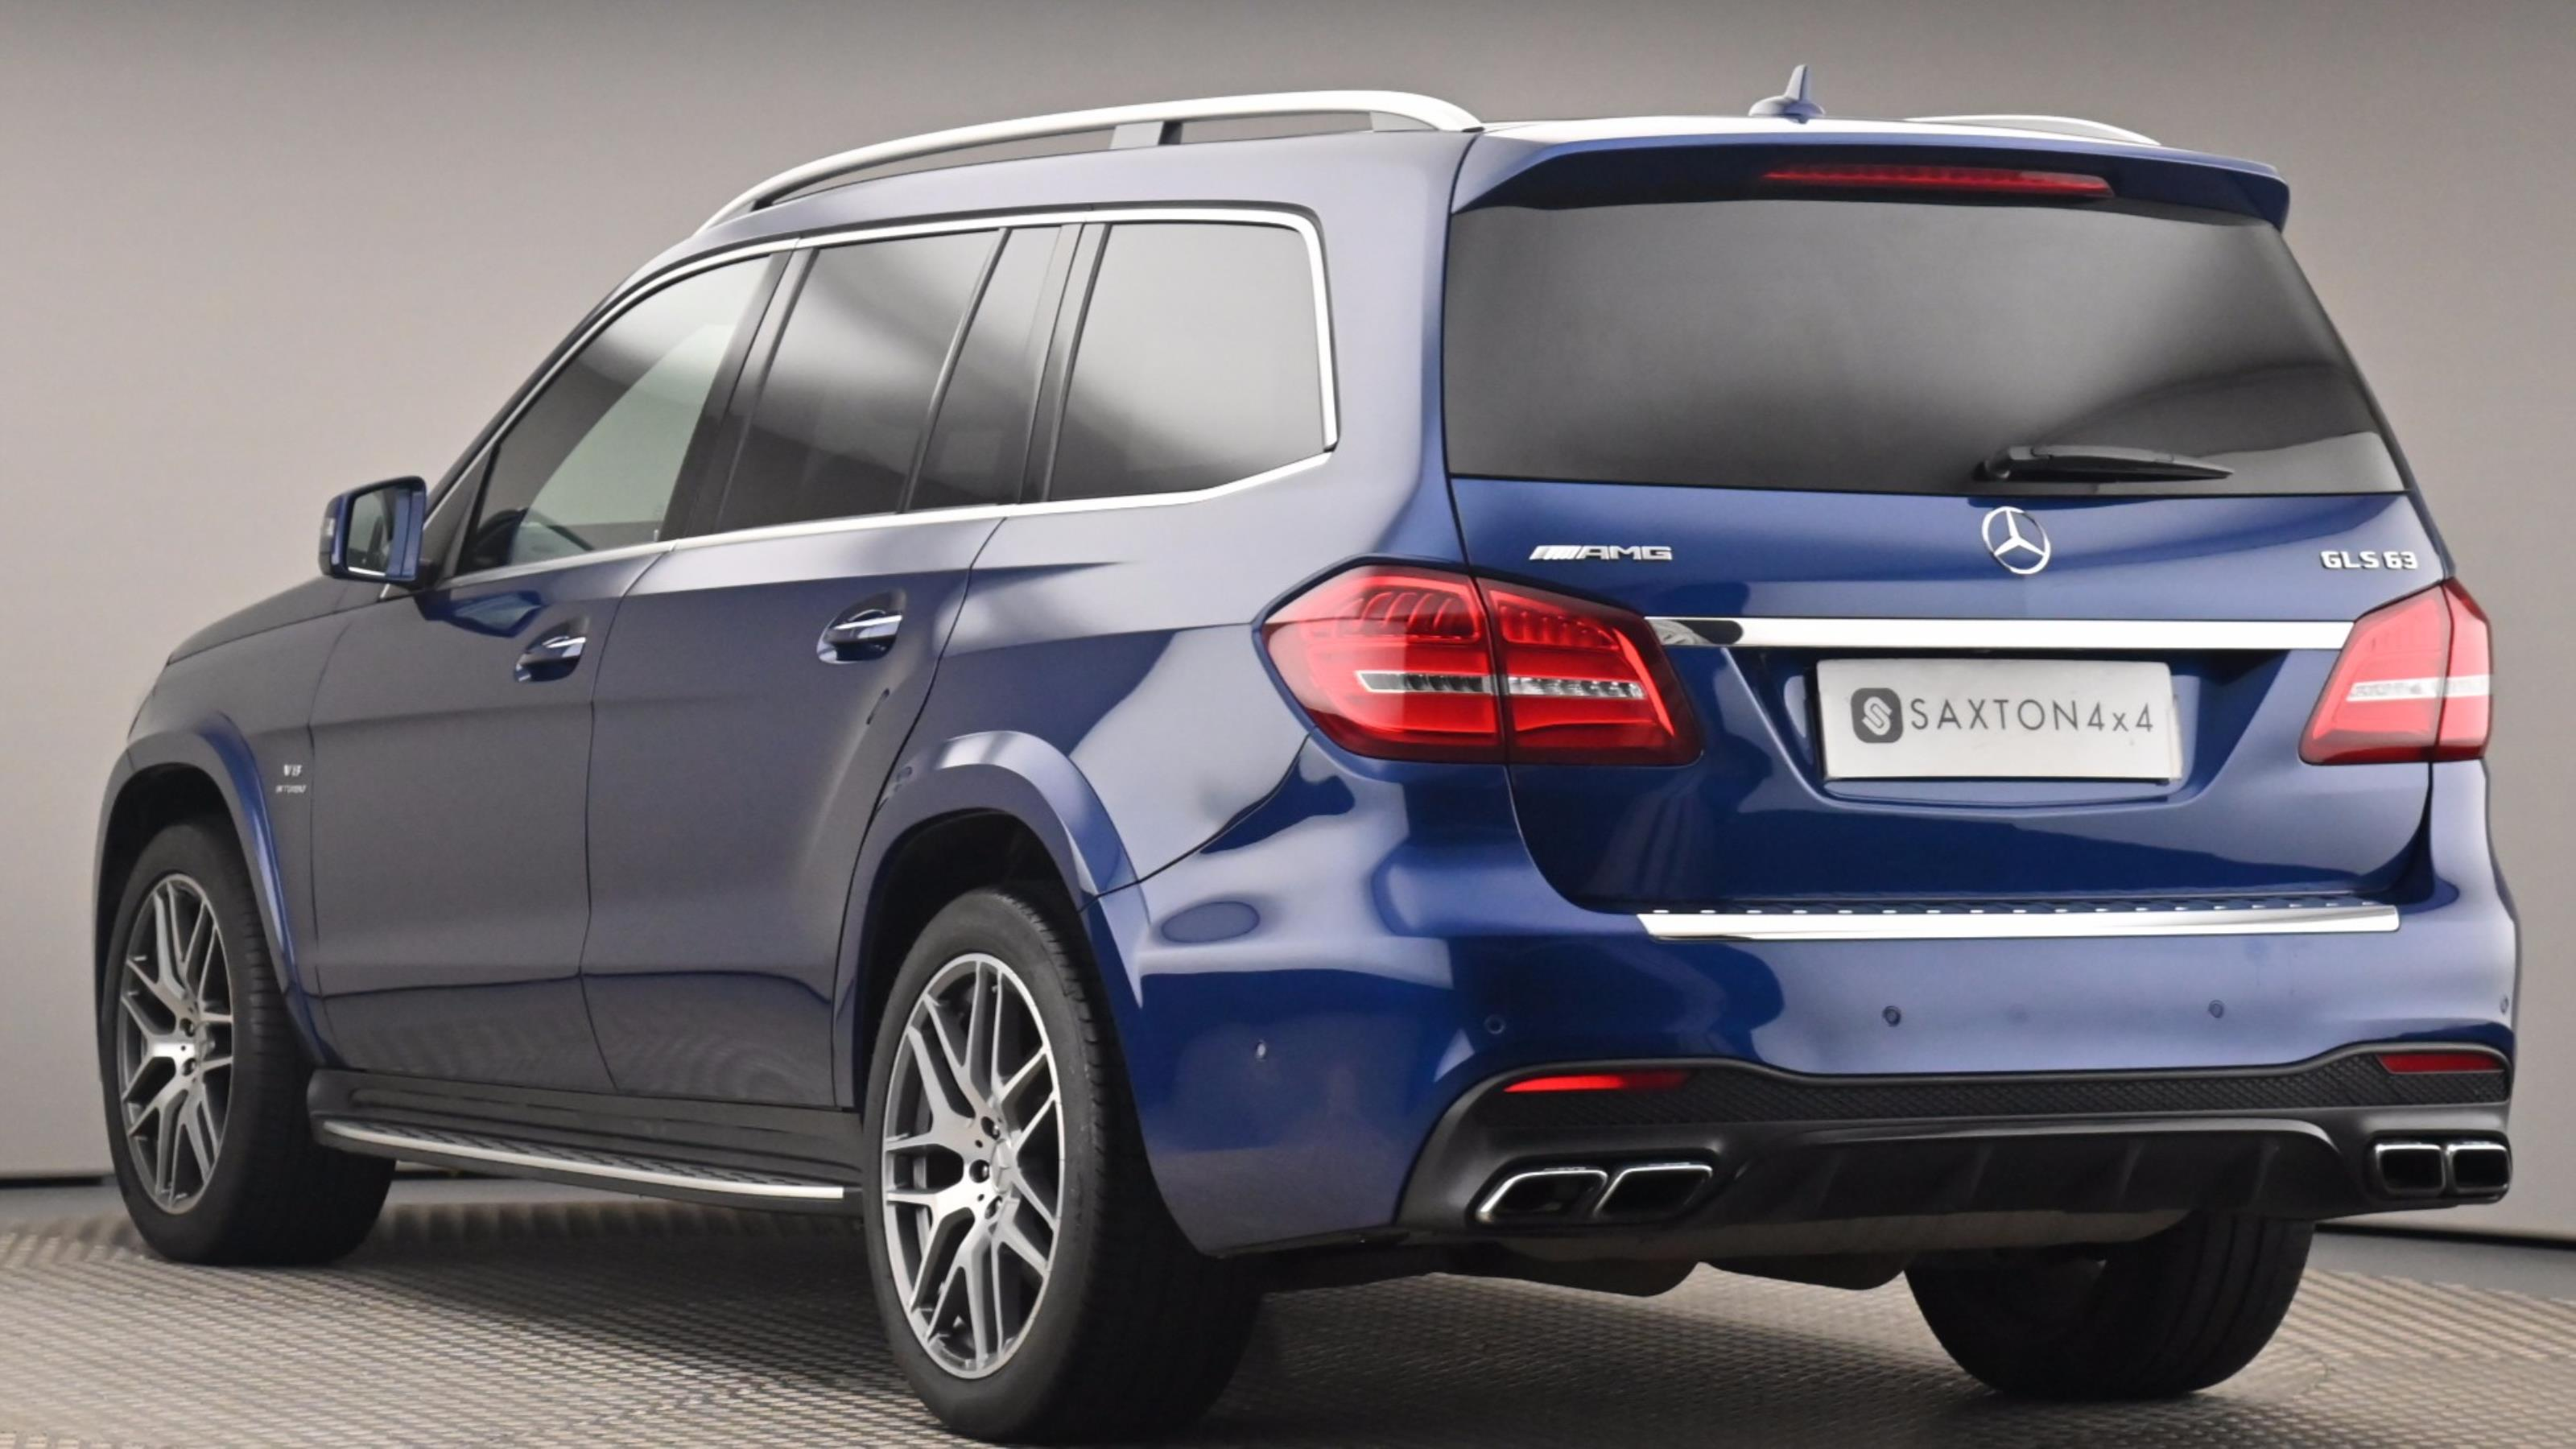 Used 2017 Mercedes-Benz GLS GLS 63 4Matic 5dr 7G-Tronic Blue at Saxton4x4